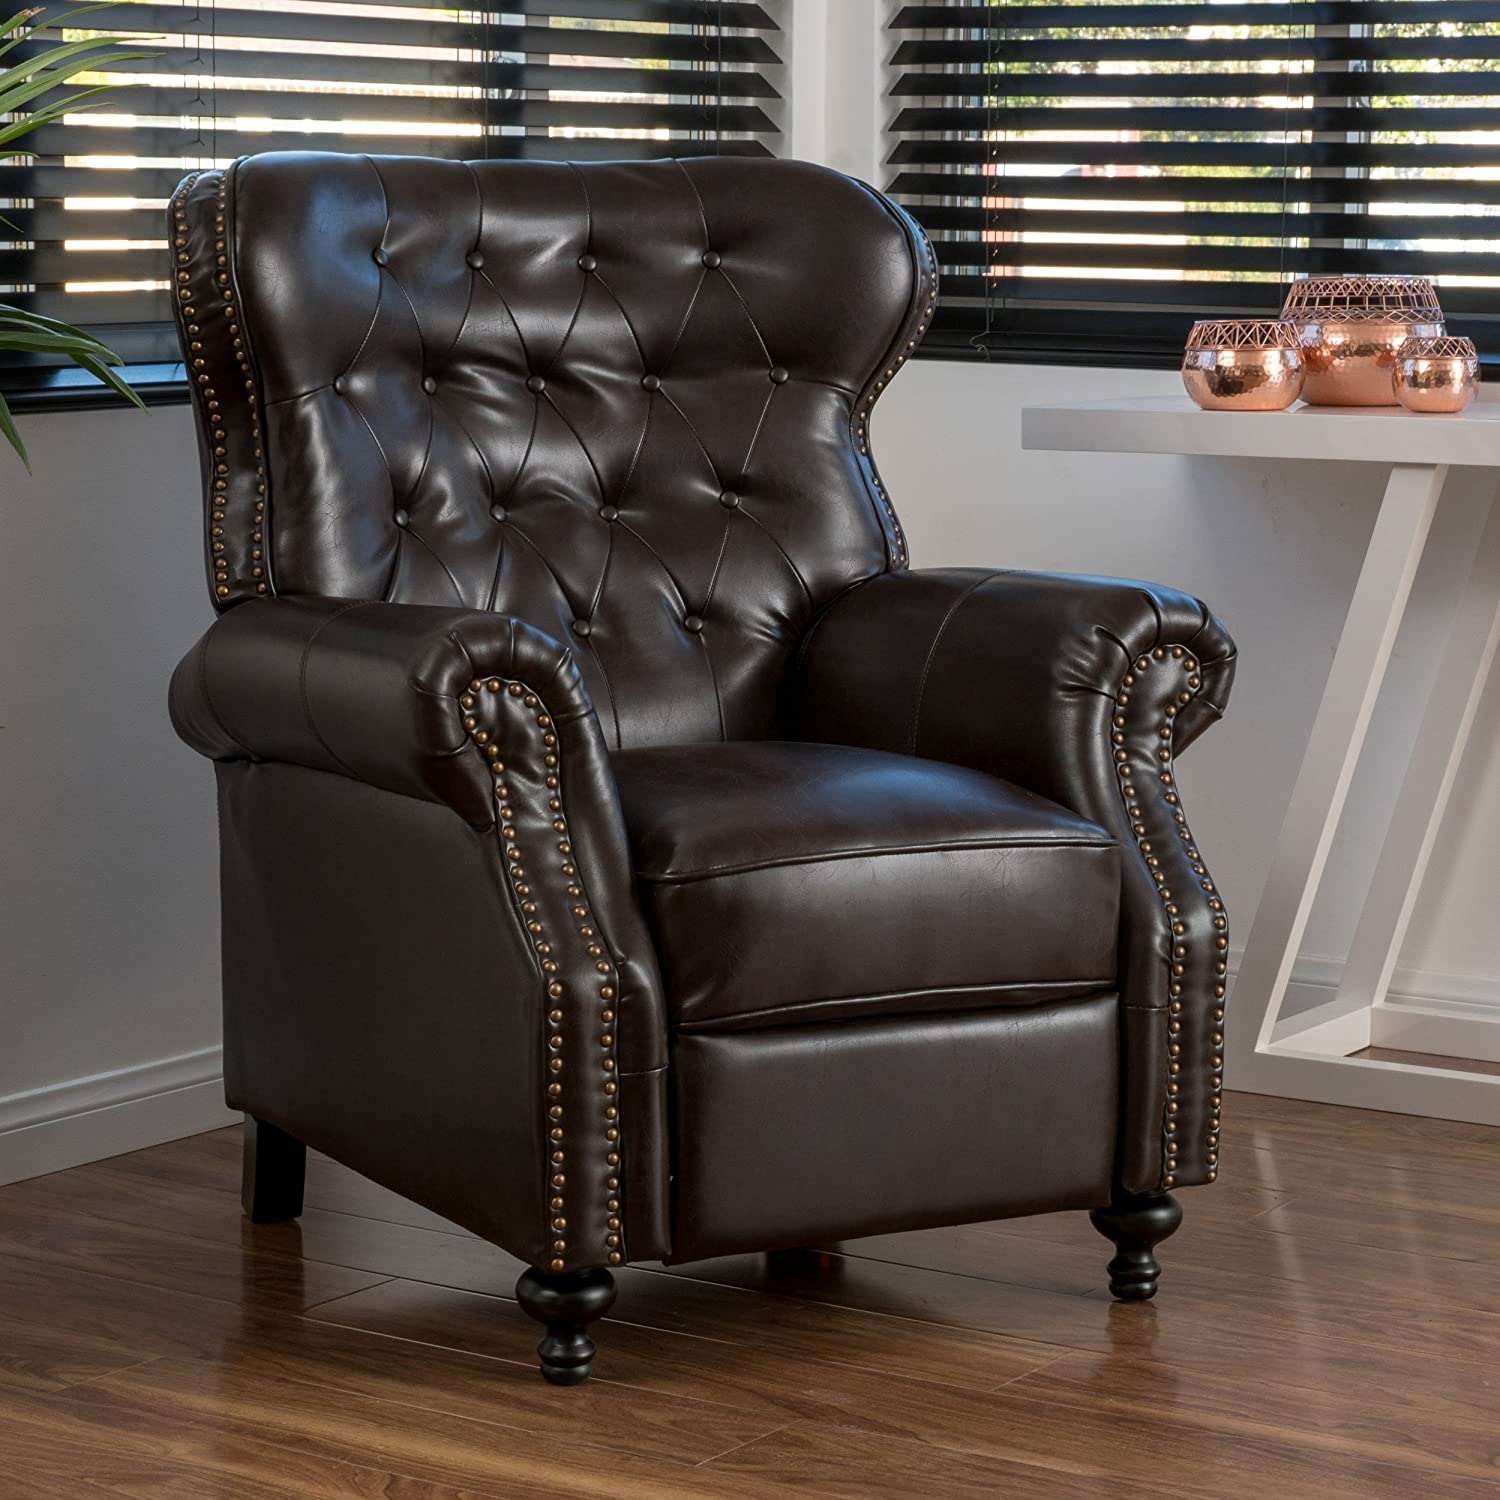 Amazon Waldo Brown Leather Recliner Club Chair Kitchen & Dining